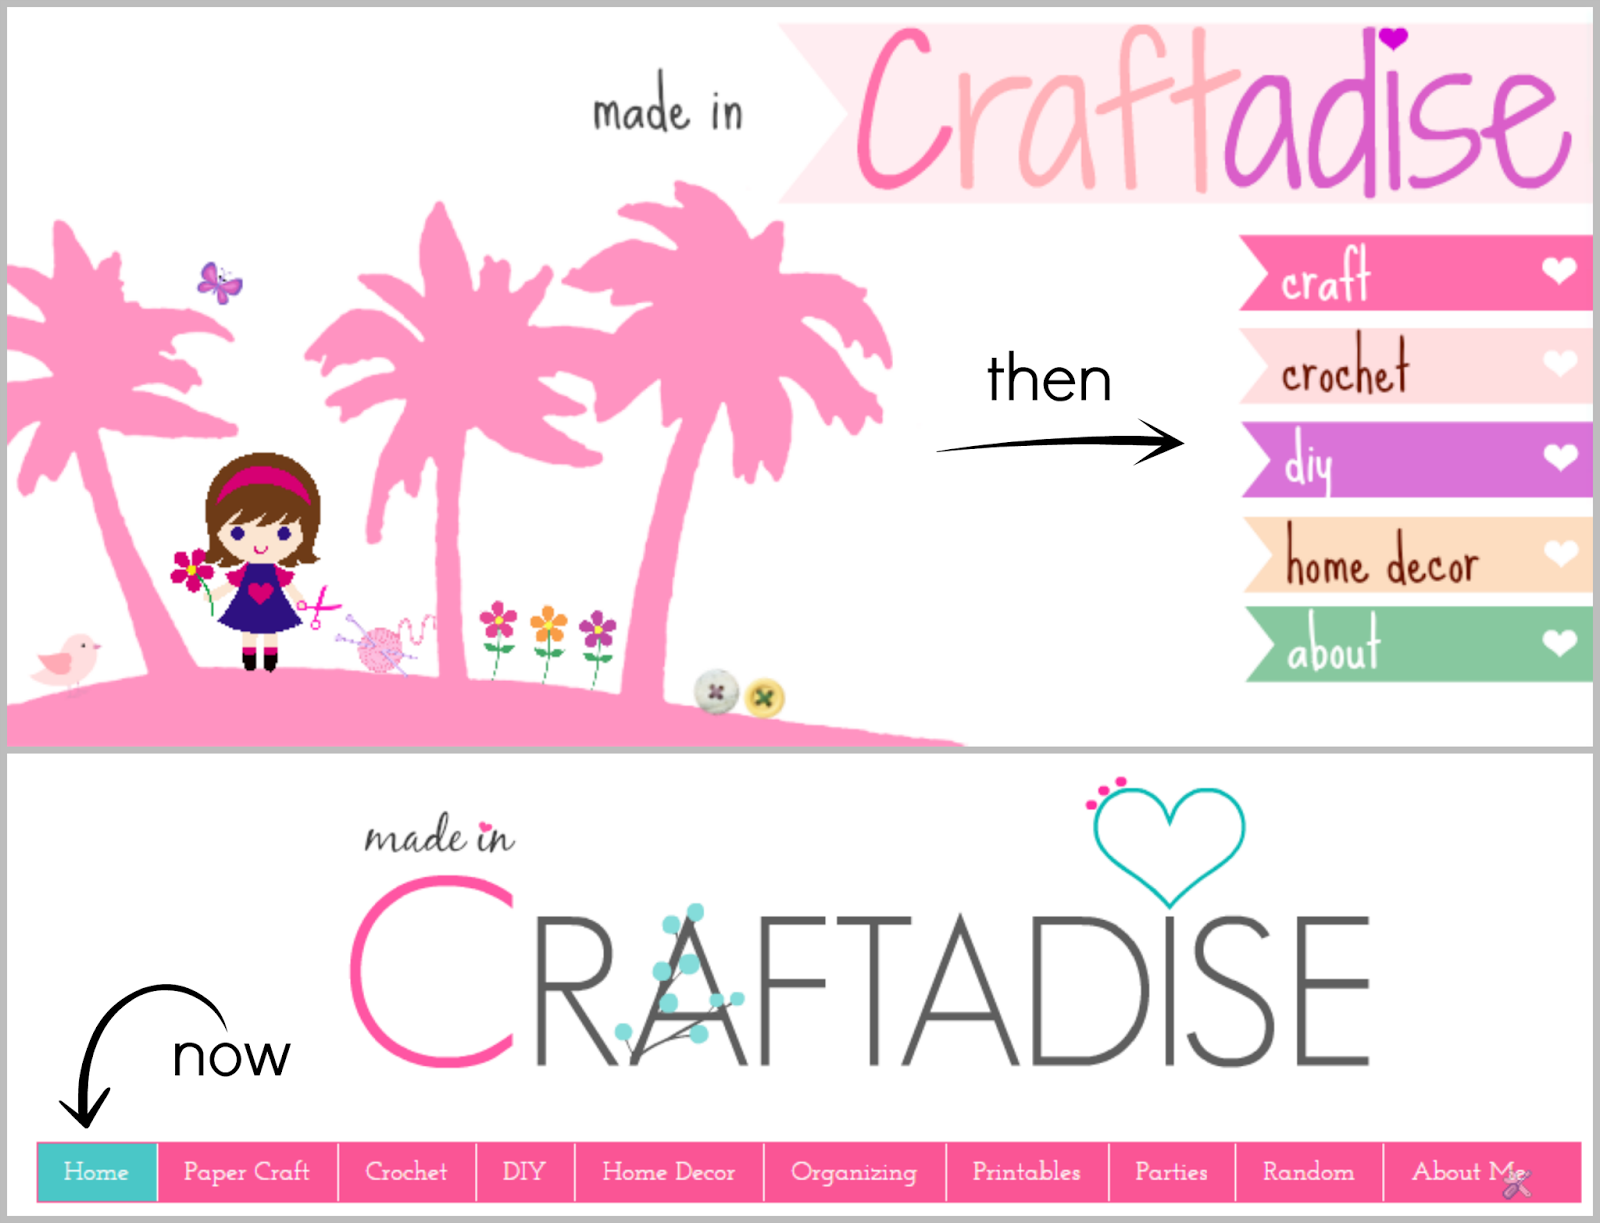 Made in craftadise, My Blogging experience so far, Blogging tips, navigation